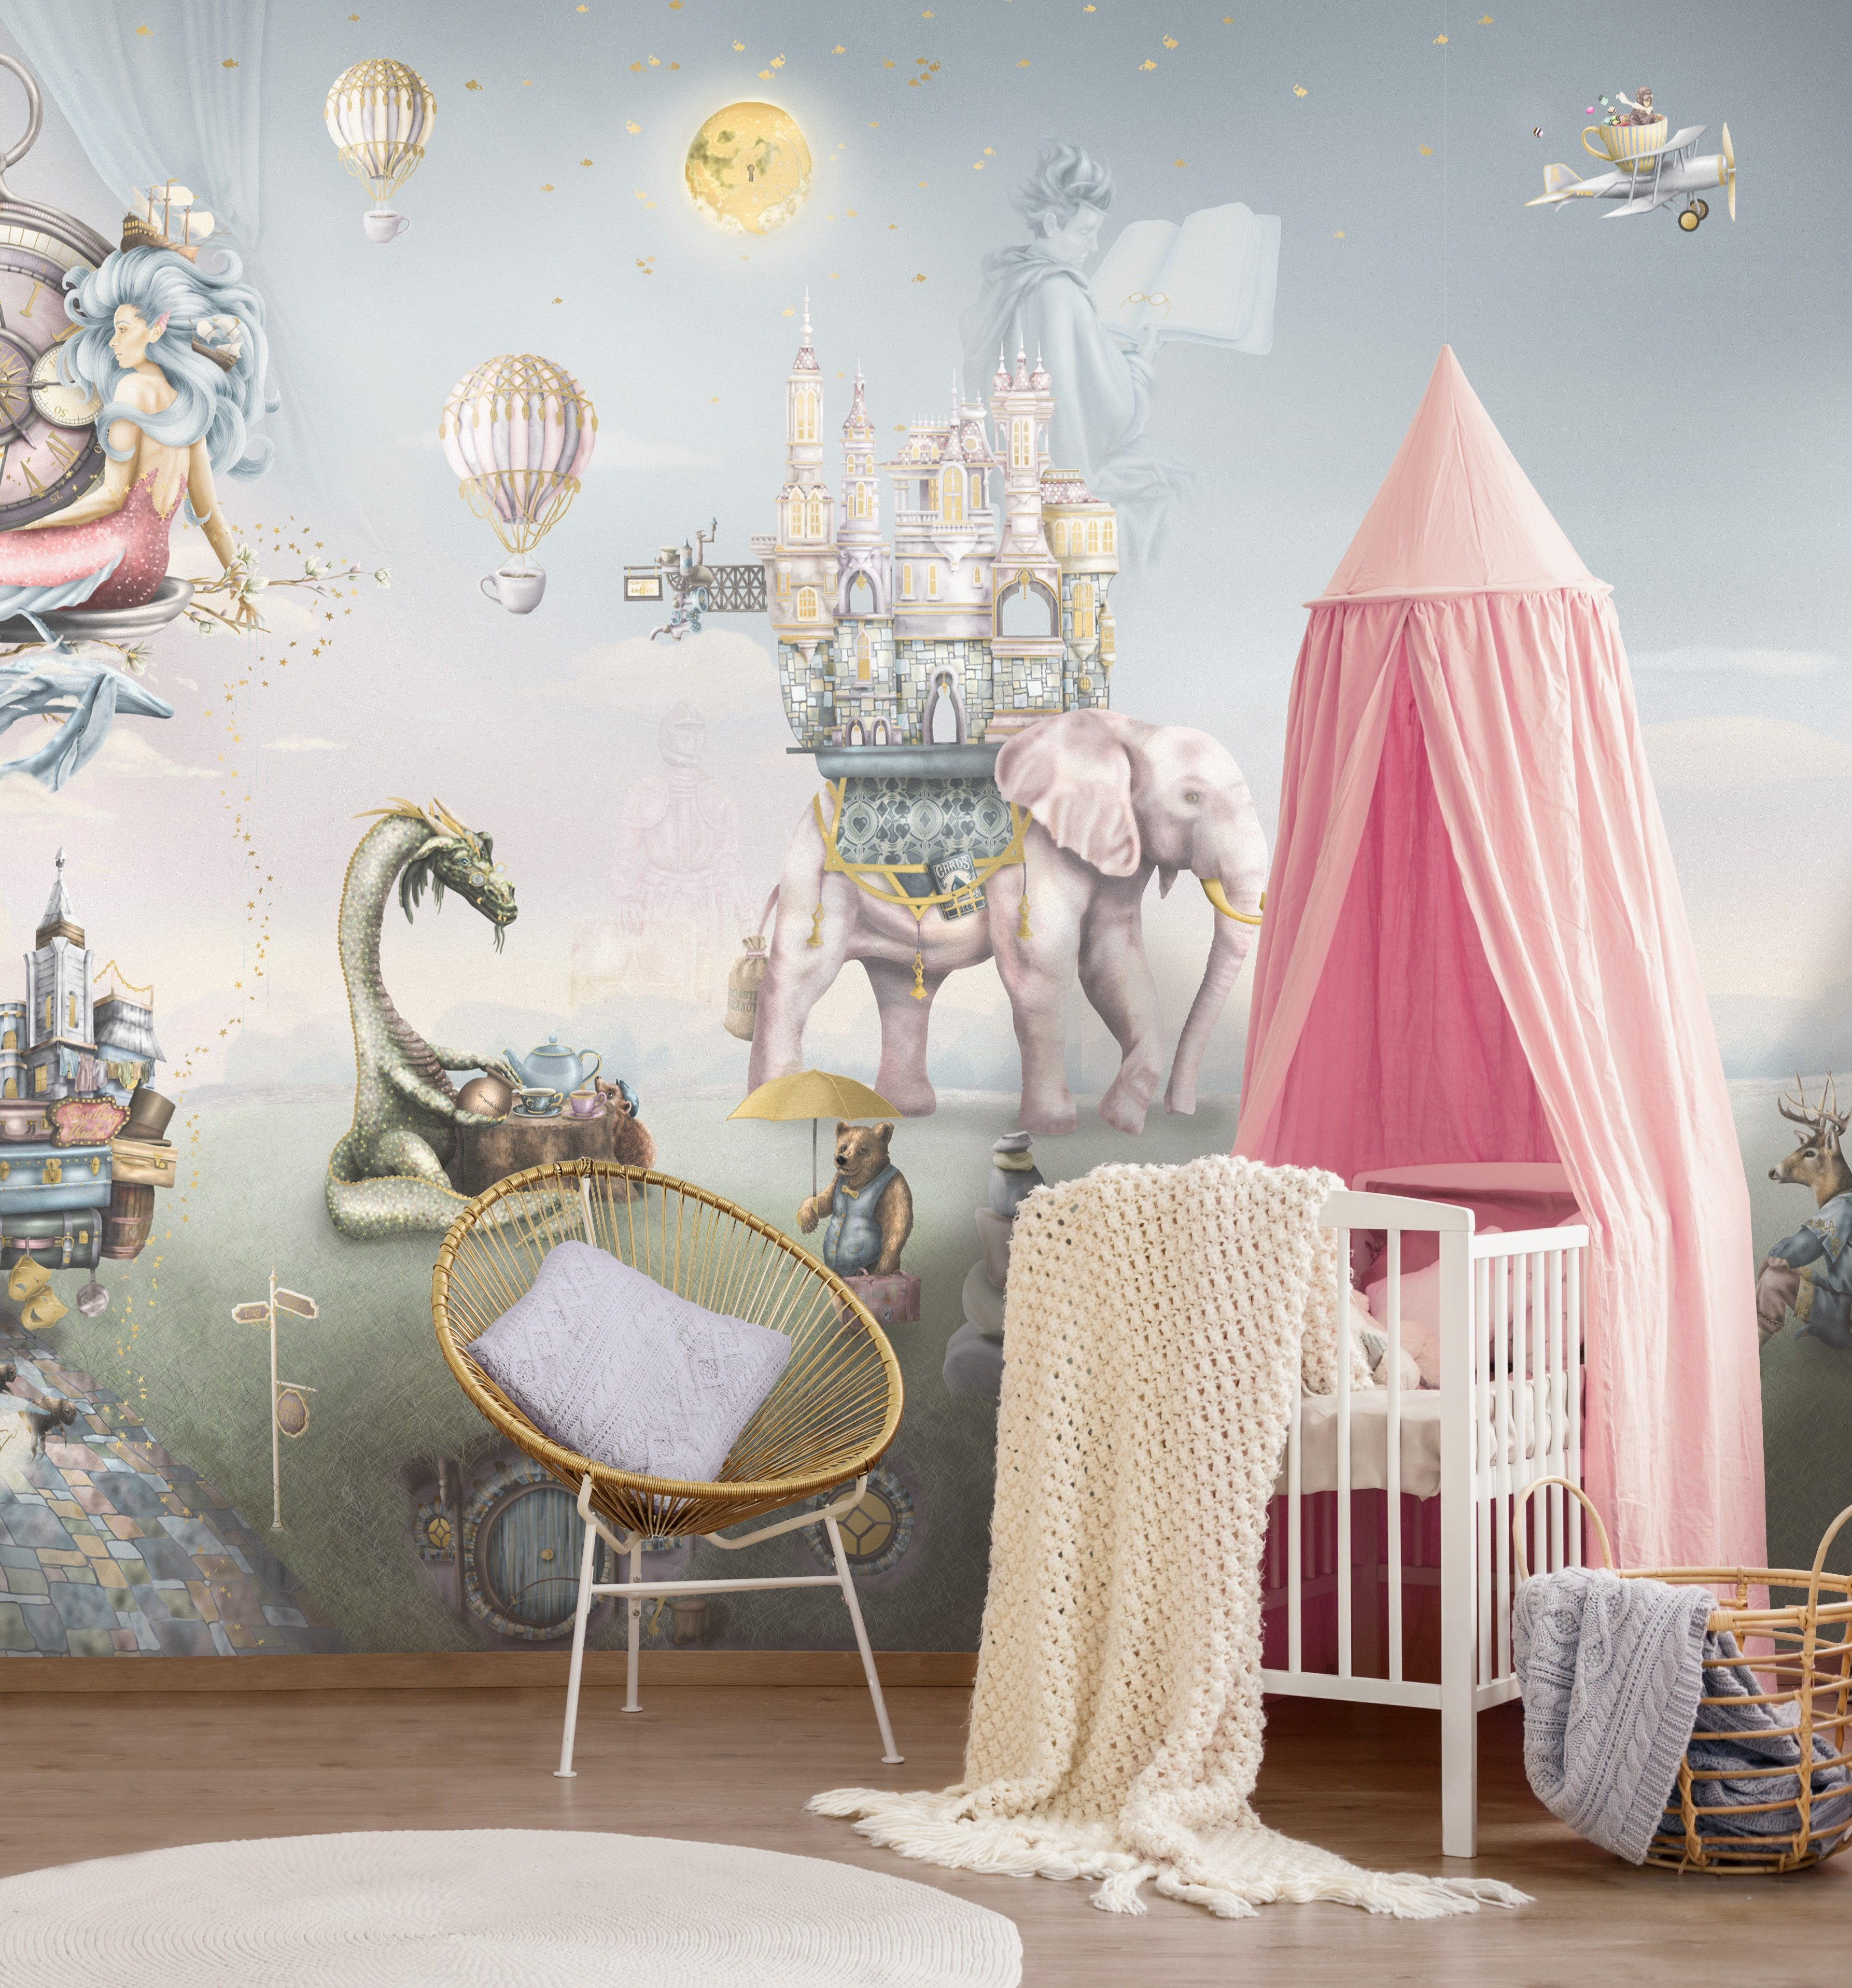 A fairy tale nursery design for a little girl. Features girls custom wall mural of fantasy woodland story book creatures. Styled with pink cot bed canopy and gold rattan chair.